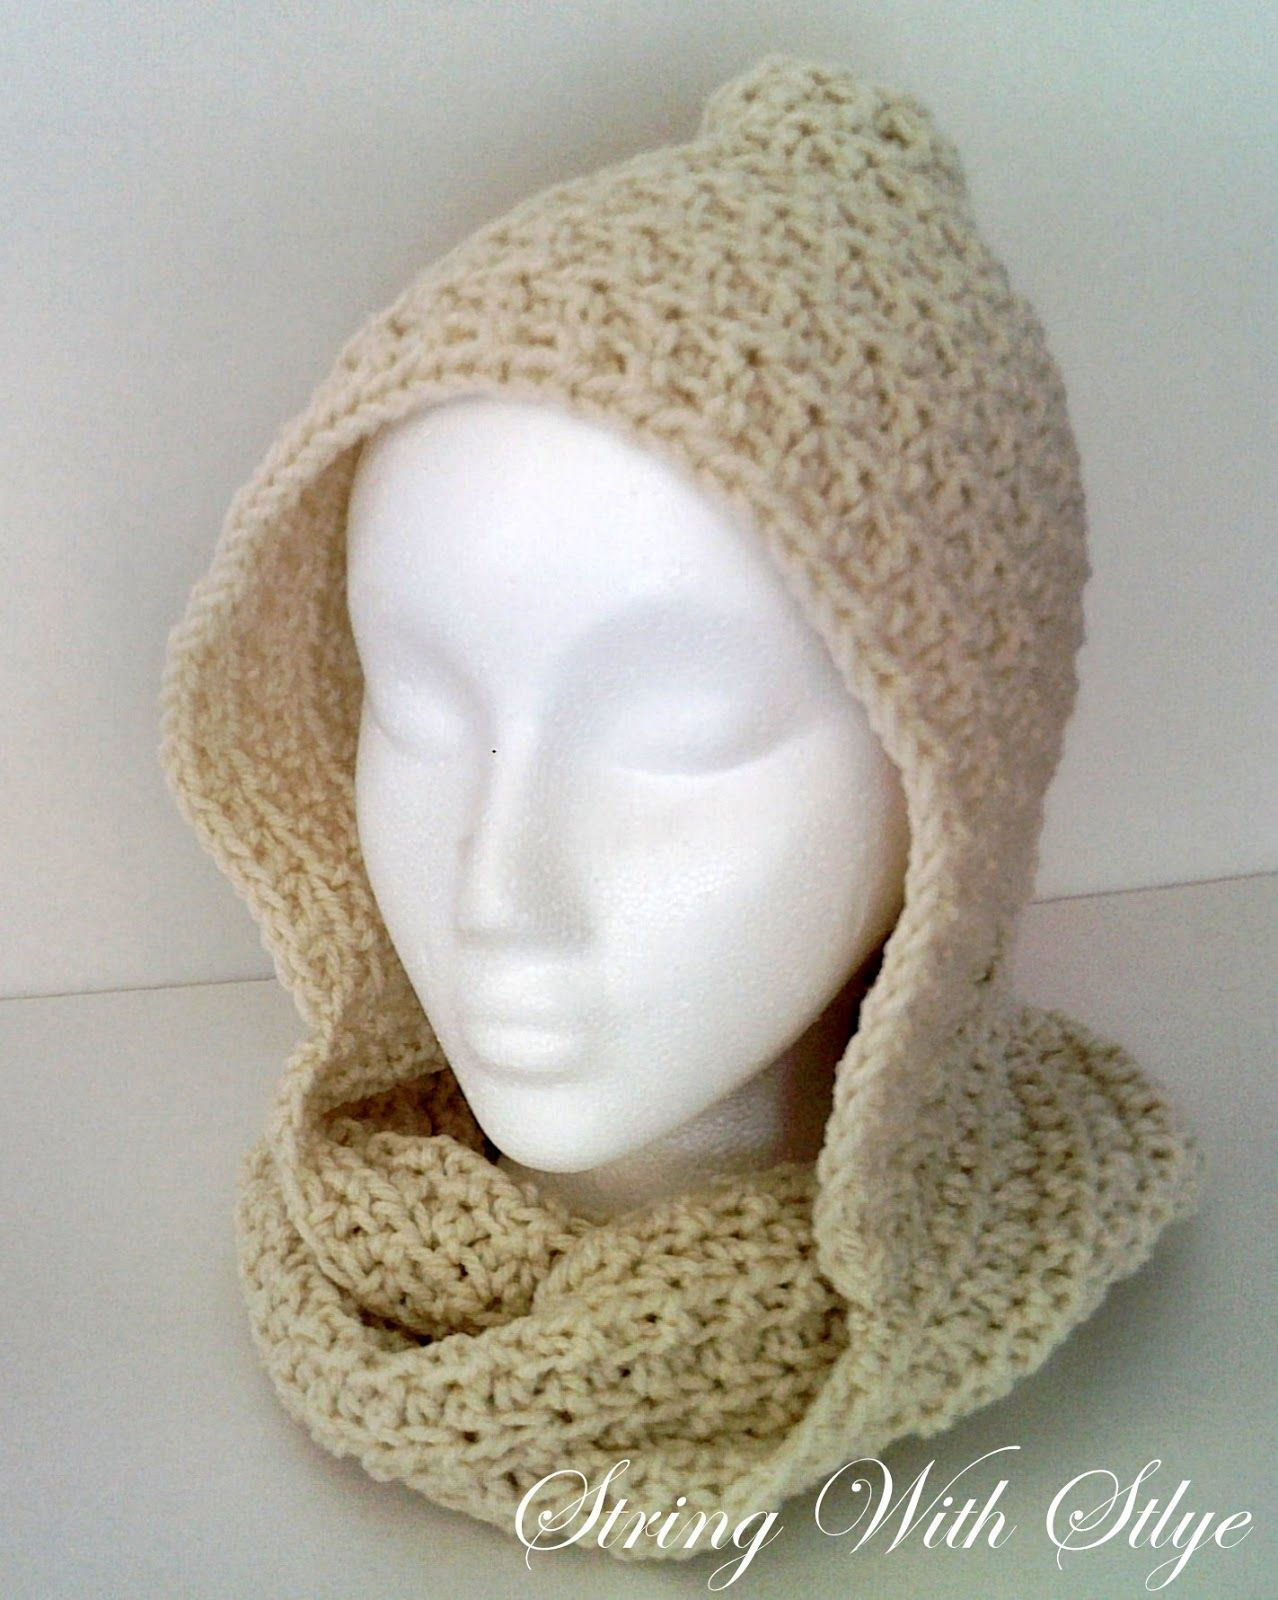 Free Crochet String With Style: Infinity Hooded Scarf Pattern | My ...